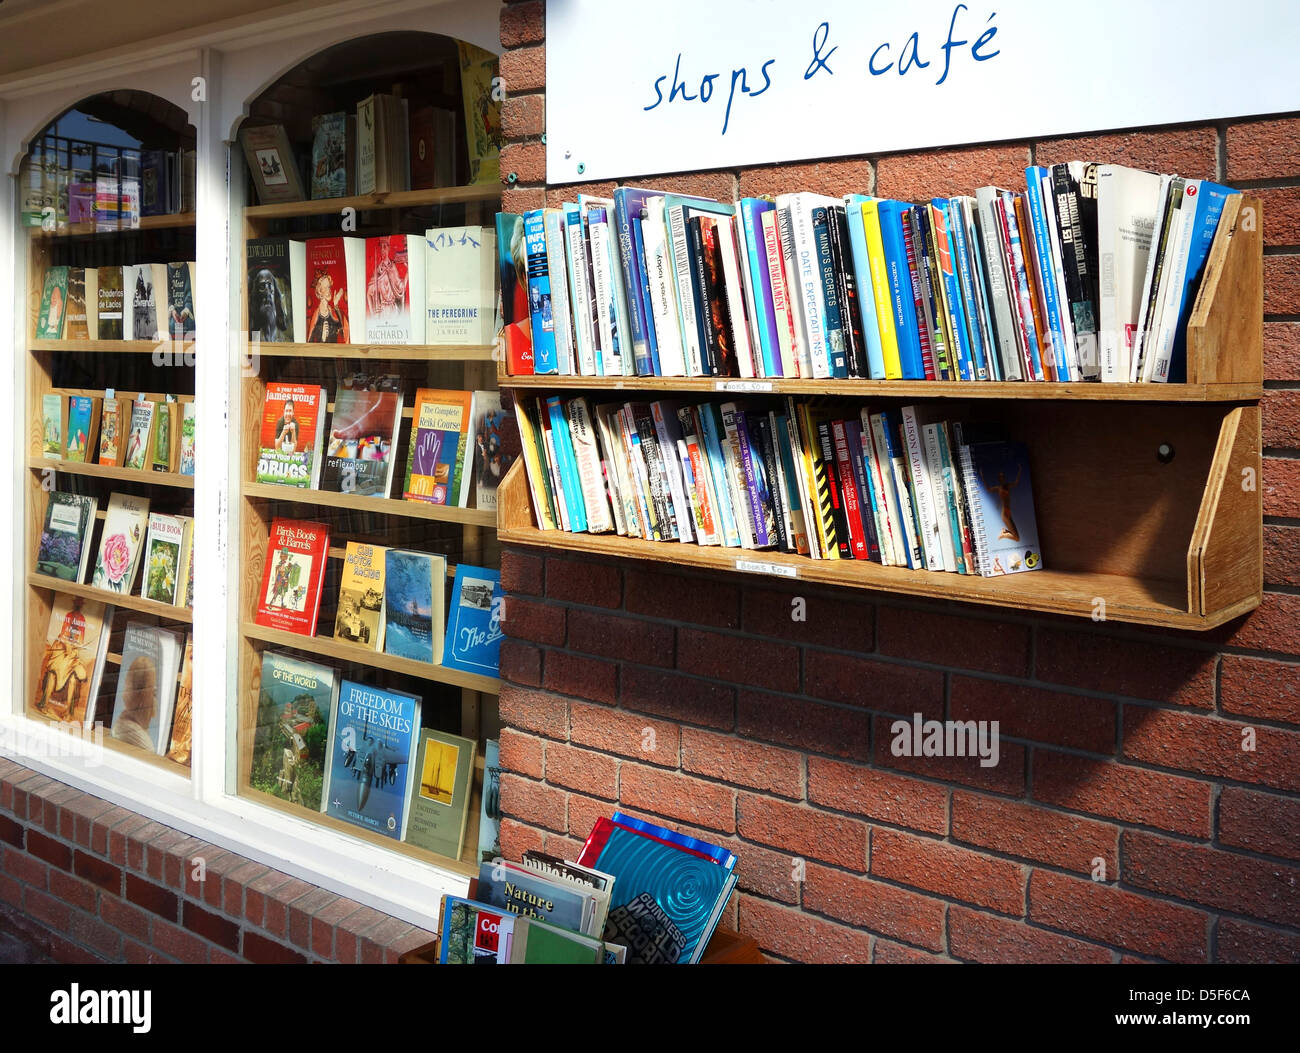 a second hand book shop - Stock Image